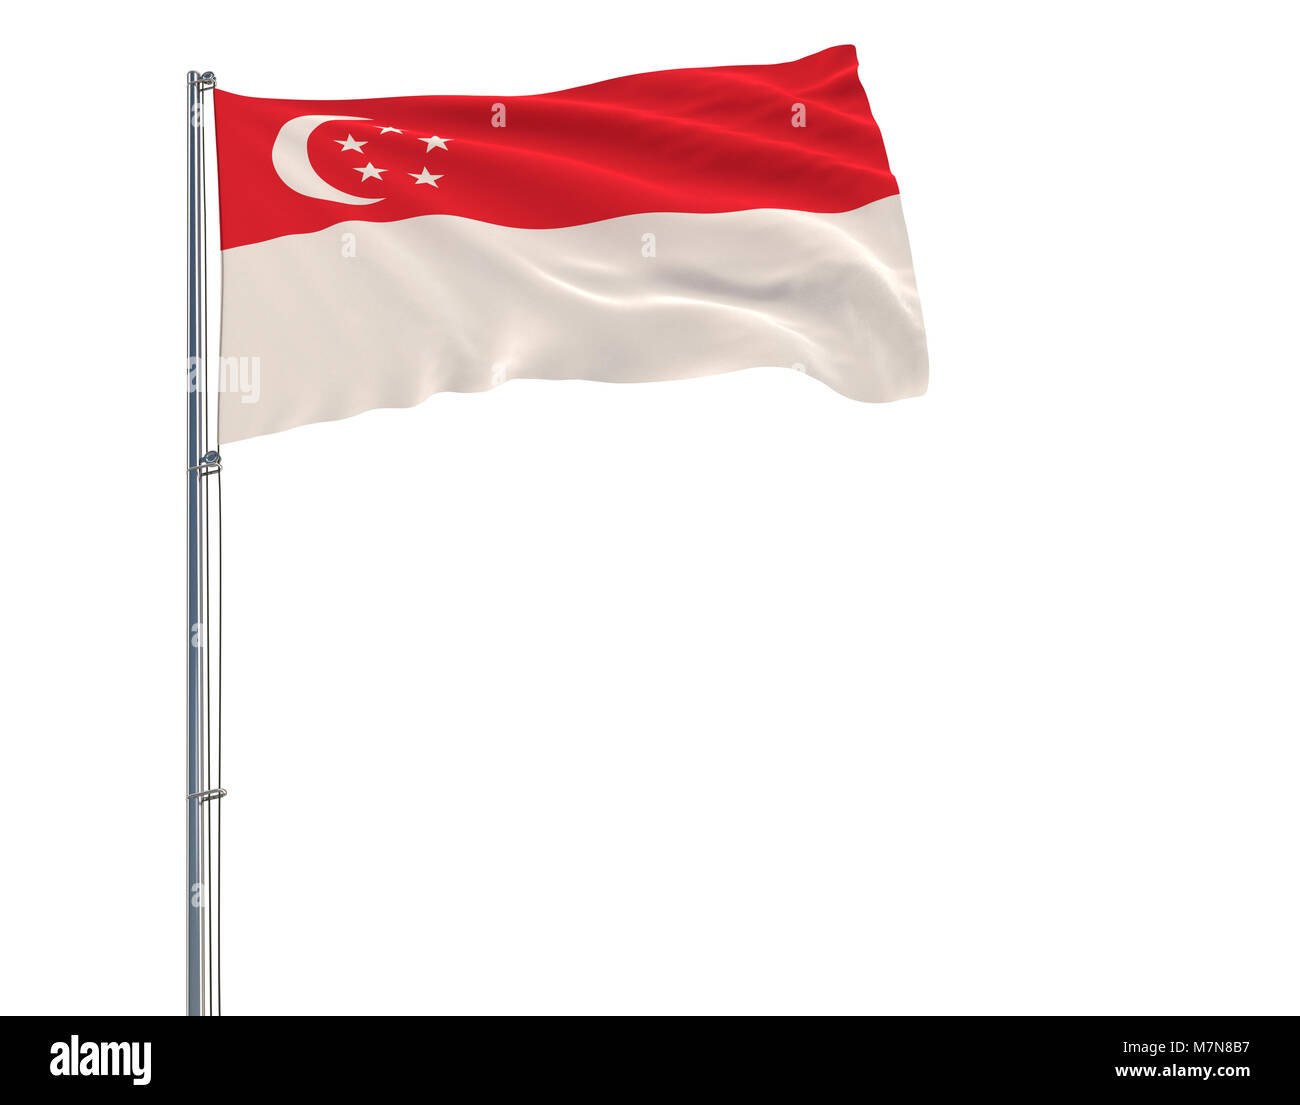 Flag of Singapore on flagpole fluttering in the wind on white background, 3d rendering - Stock Image